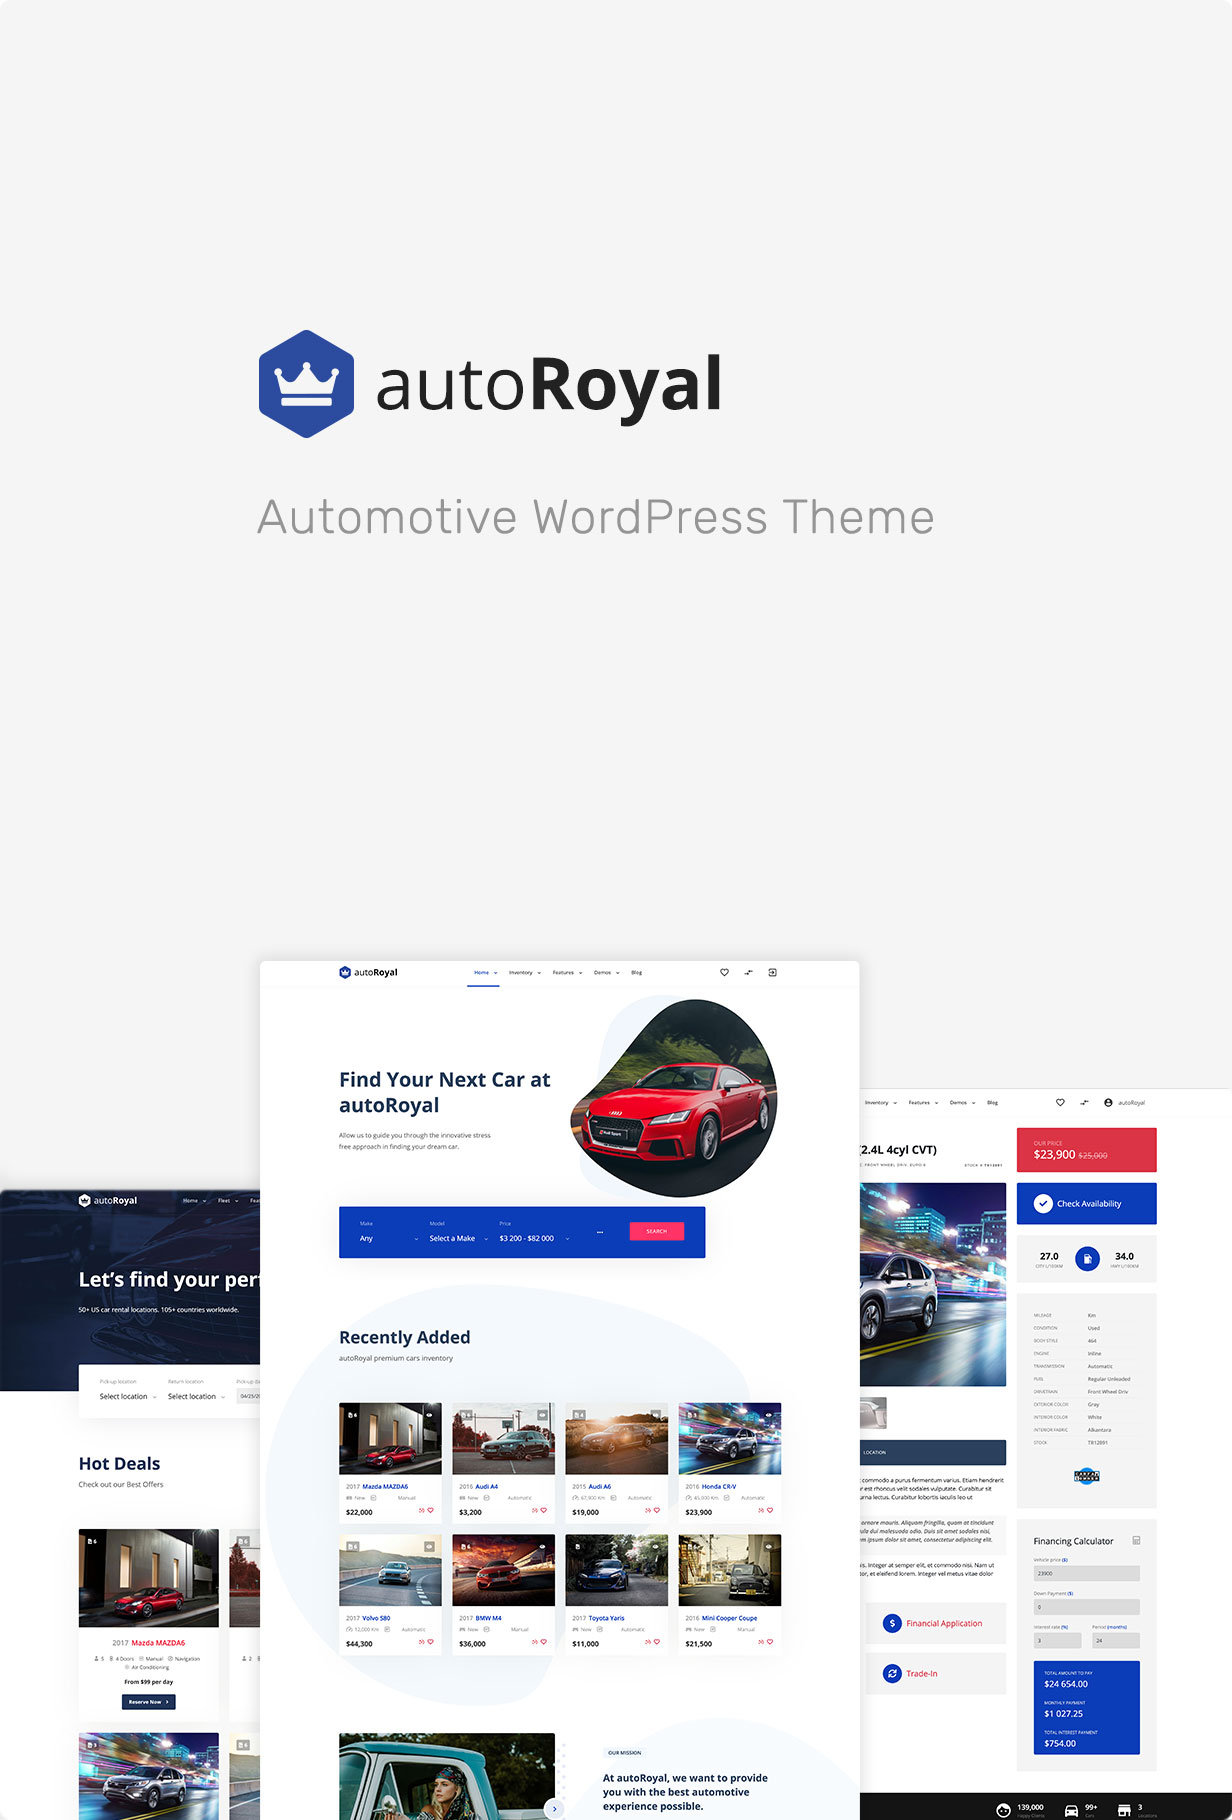 autoRoyal - Automotive WordPress Theme - 3